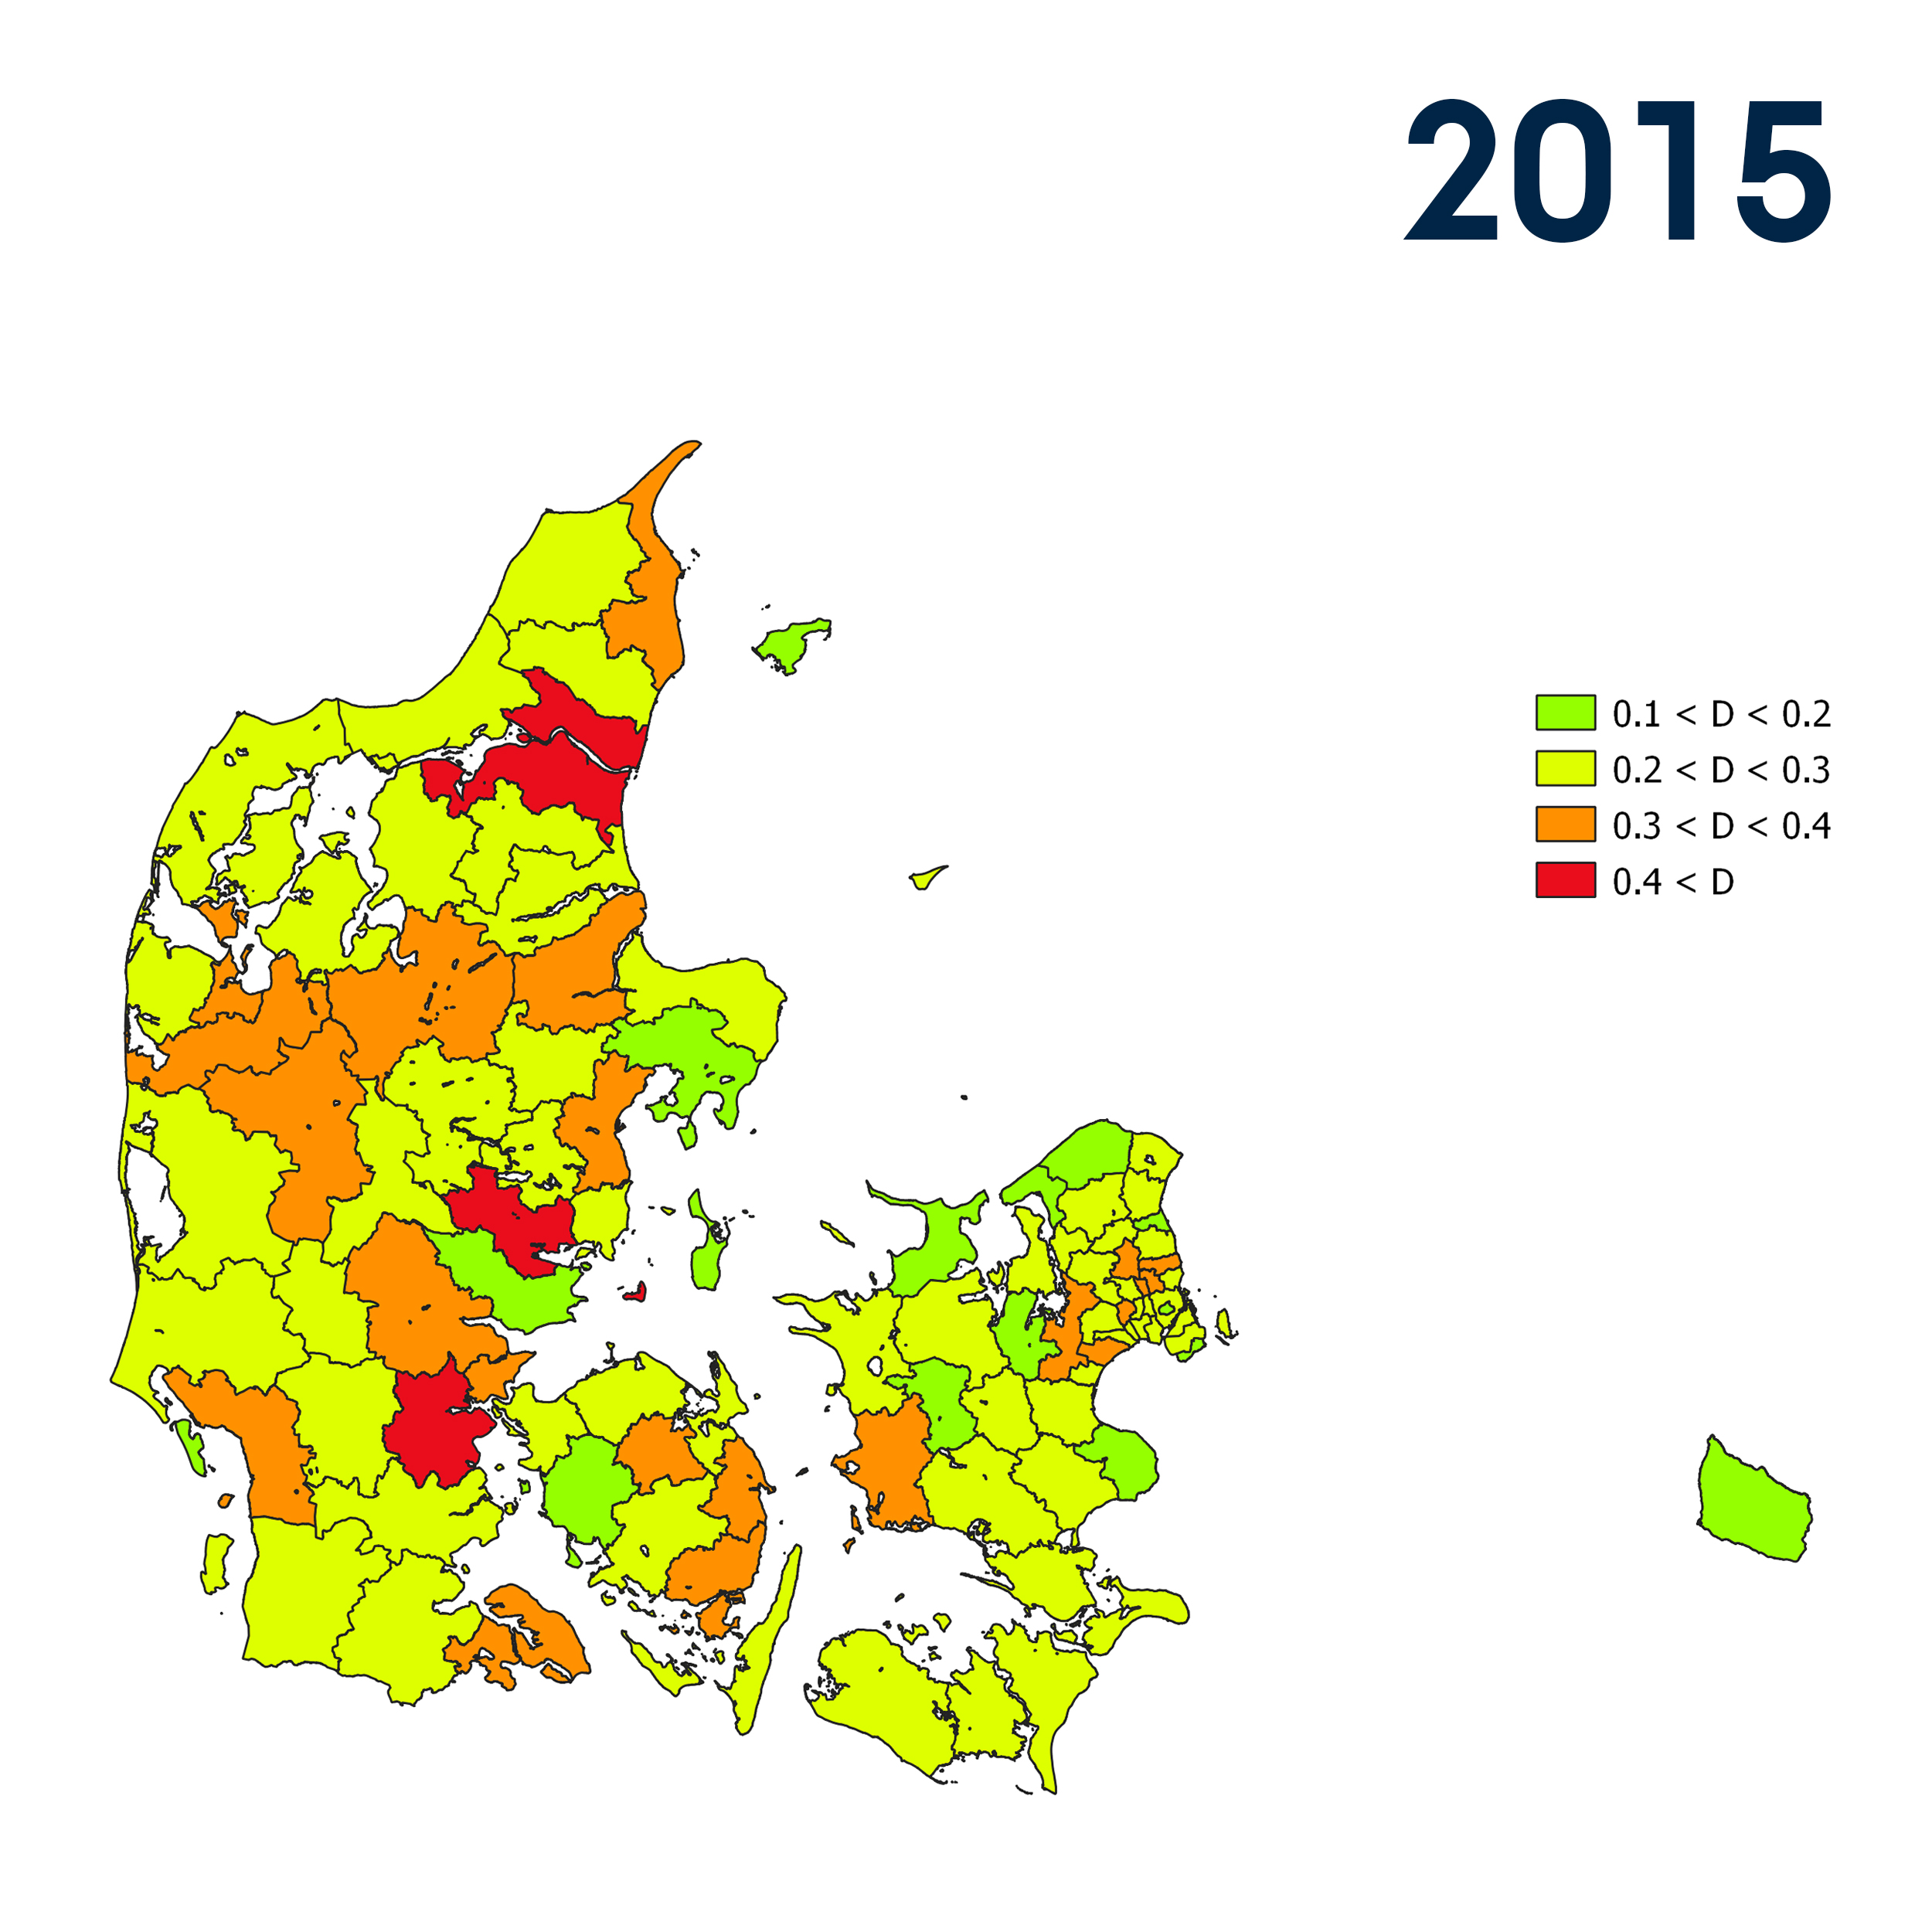 The maps show how segregated the lowest income households were living from other population groups in the Danish municipalities in 1988 and 2015.